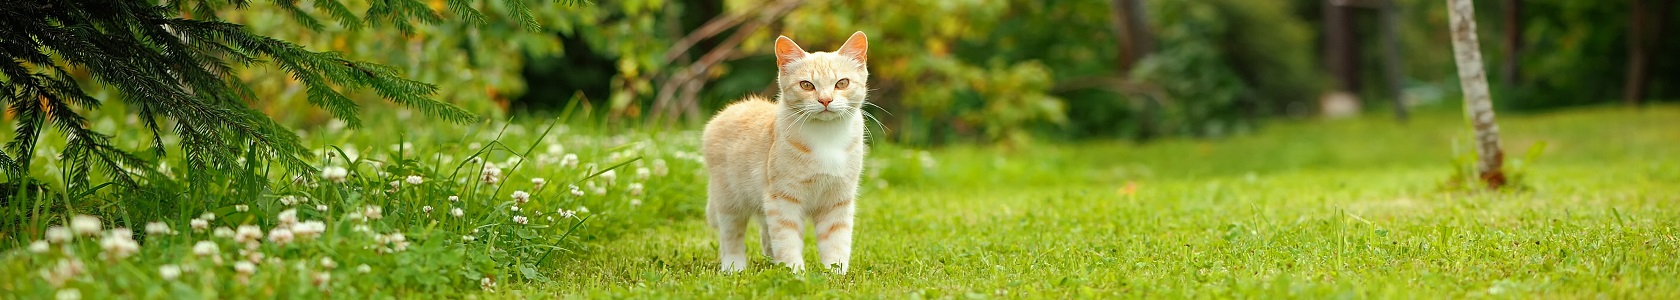 Cat Walking on Green Grass (16:9 Aspect Ratio)